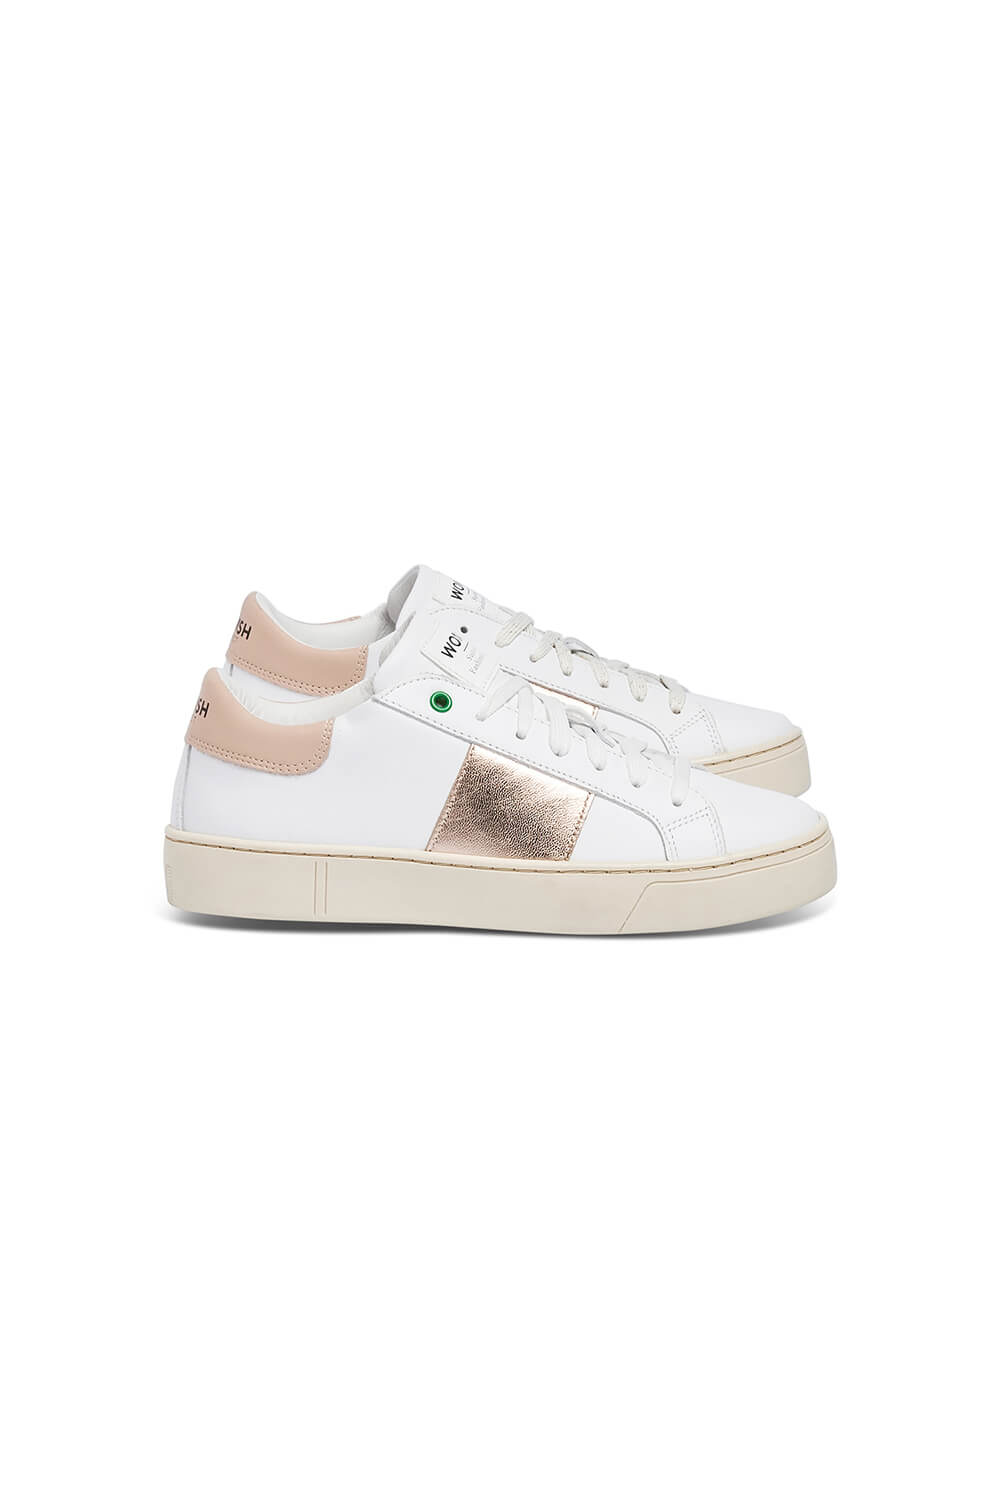 WOMSH Sneakers KINGSTON in white and beige leather with a contrasting band in copper